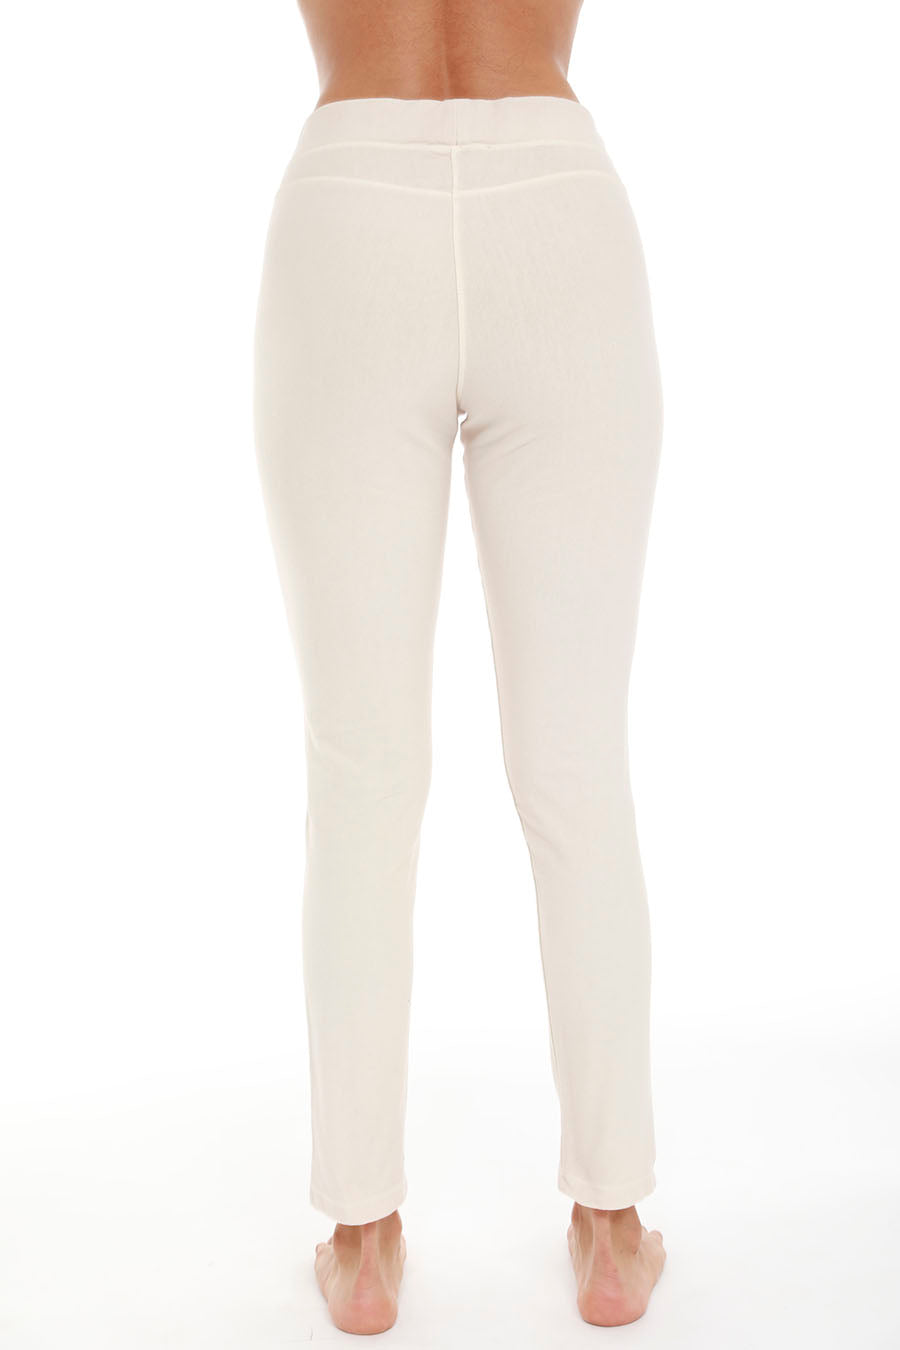 French Kyss High Rise Capri